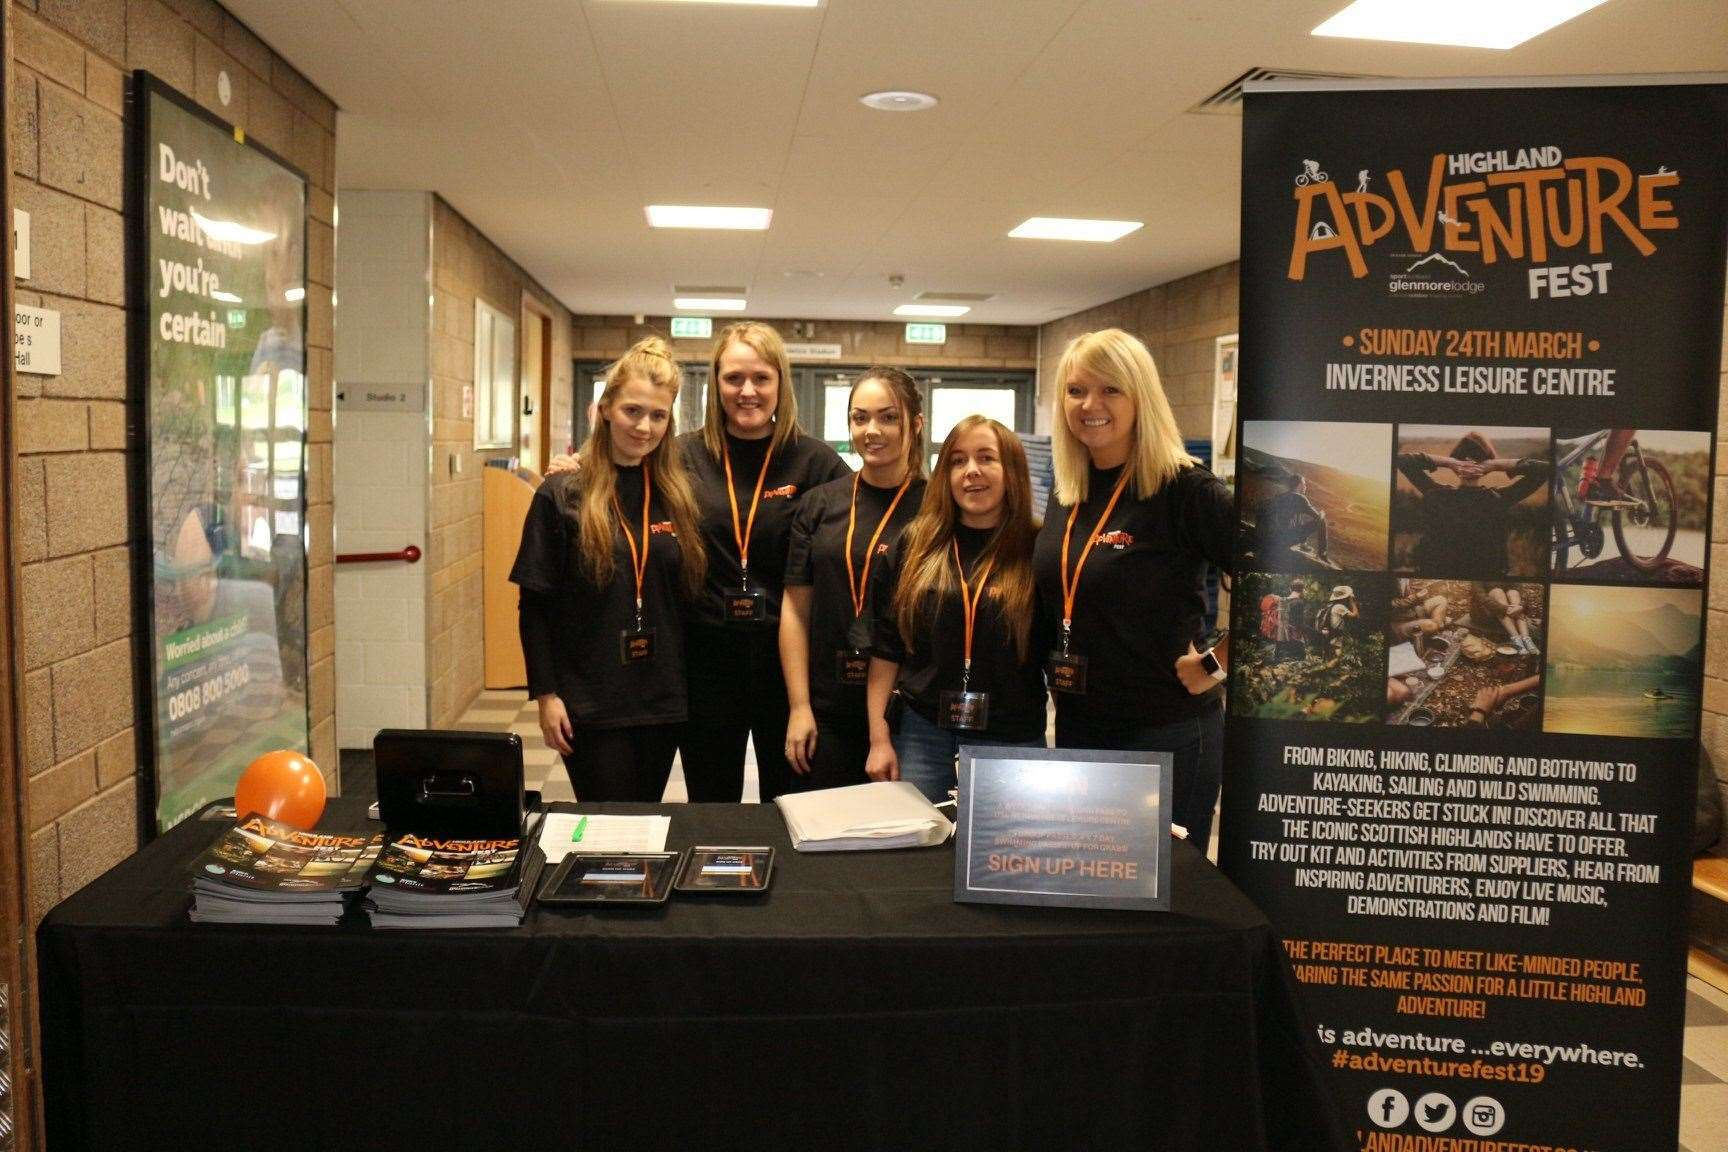 Organisers of Highland Adventure Fest, including Cecilia Grigor (right).